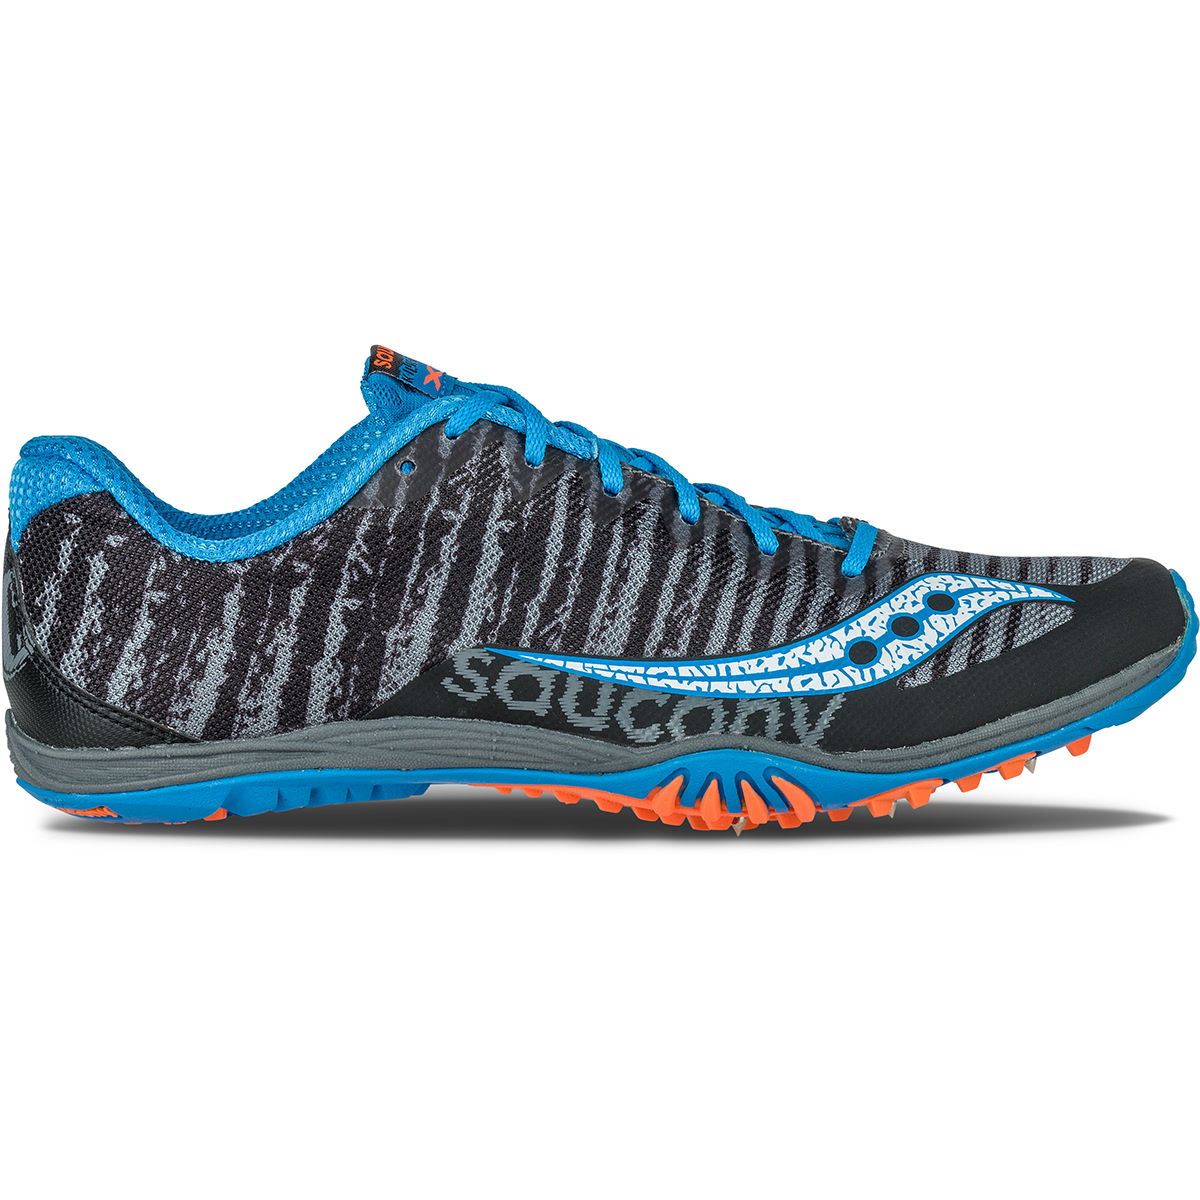 Chaussures de cross-country Saucony Kilkenny (AH16) - 7 UK Black/Carolina Chaussures de running à pointes